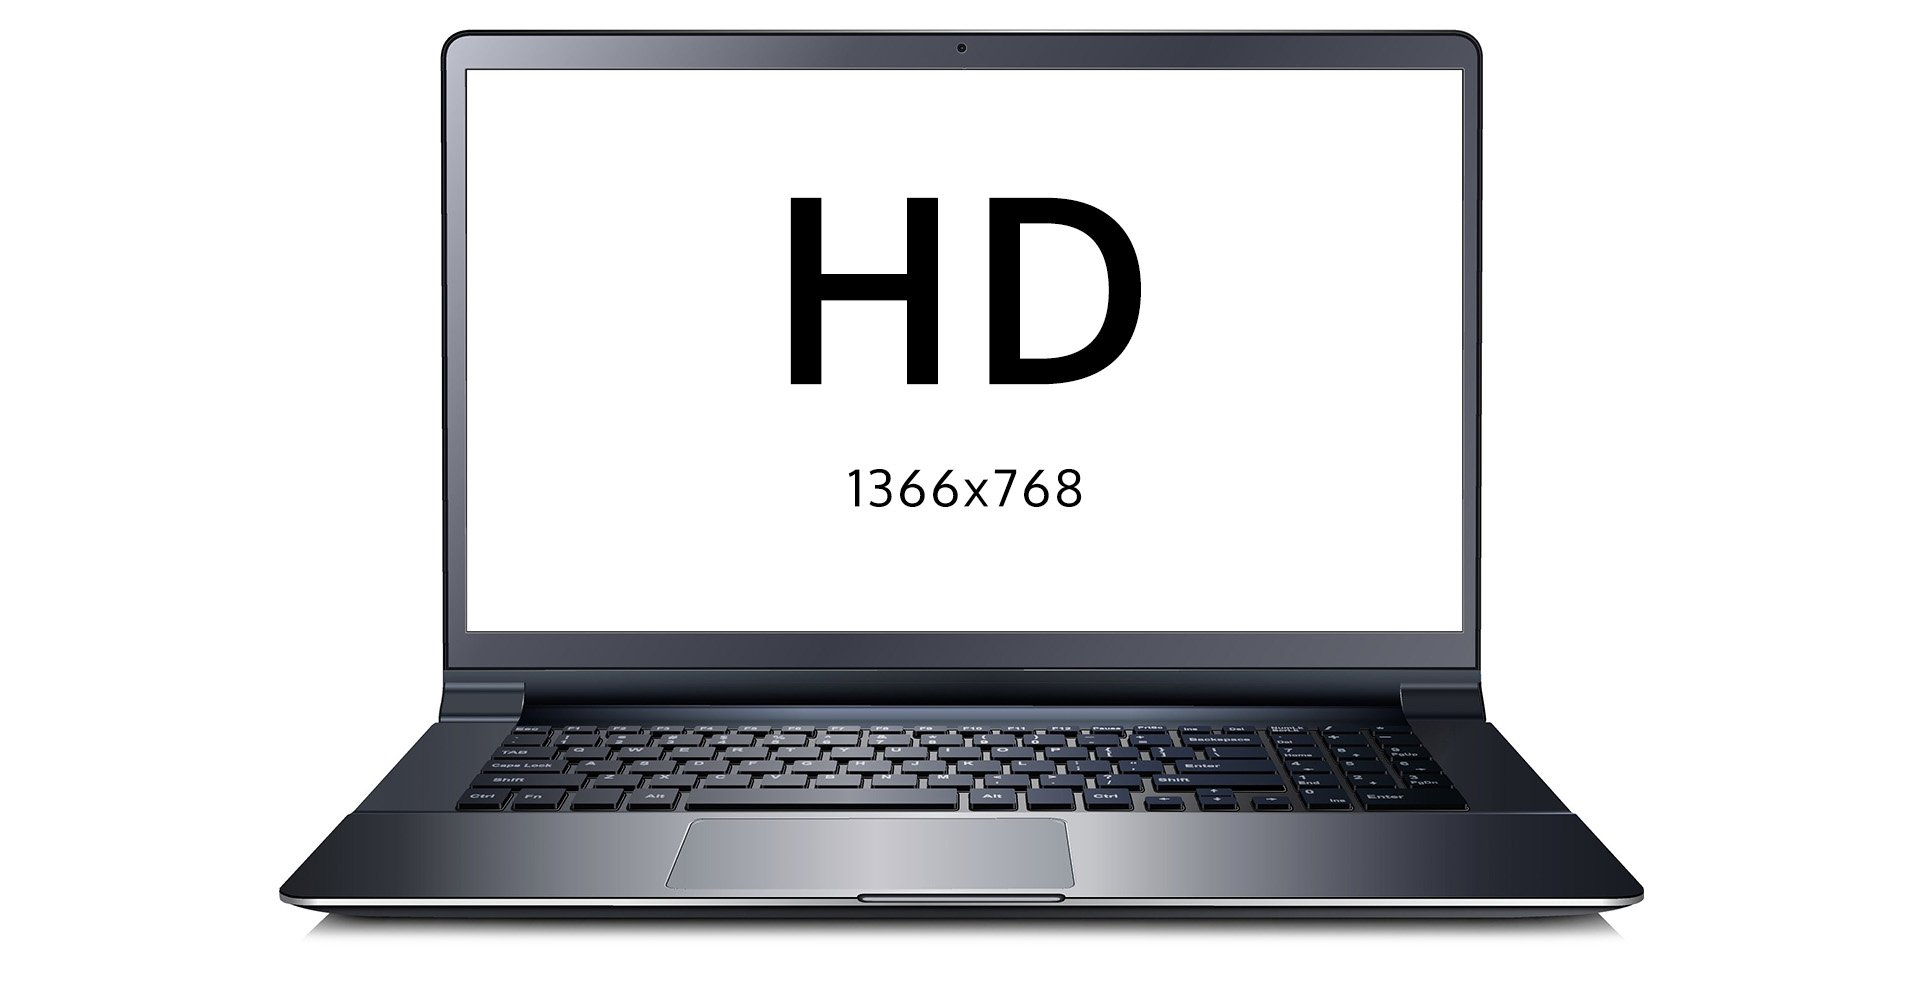 Dell Latitude E6430 i5-3320M 8GB 240SSD WIN7Pro                             HD 1366x768 resolutsioon